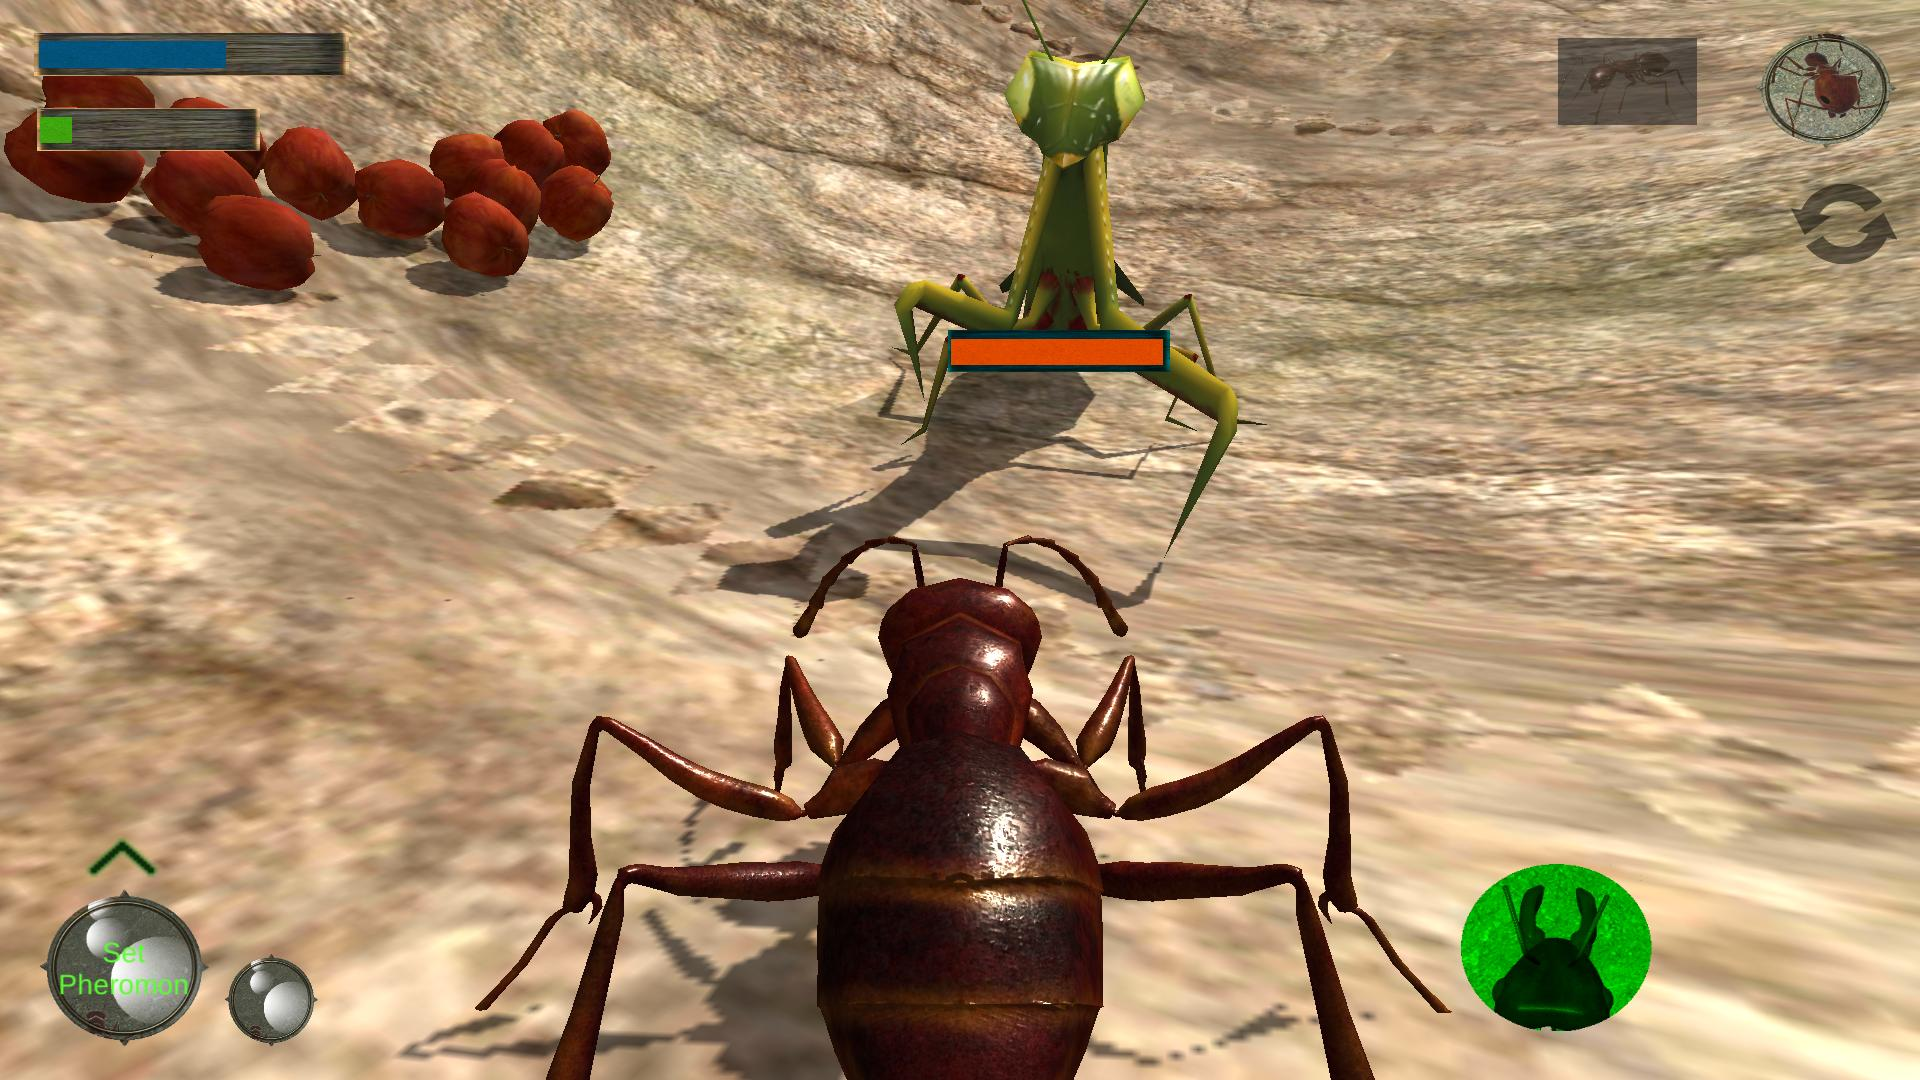 Ant Simulation 3D for Android - APK Download